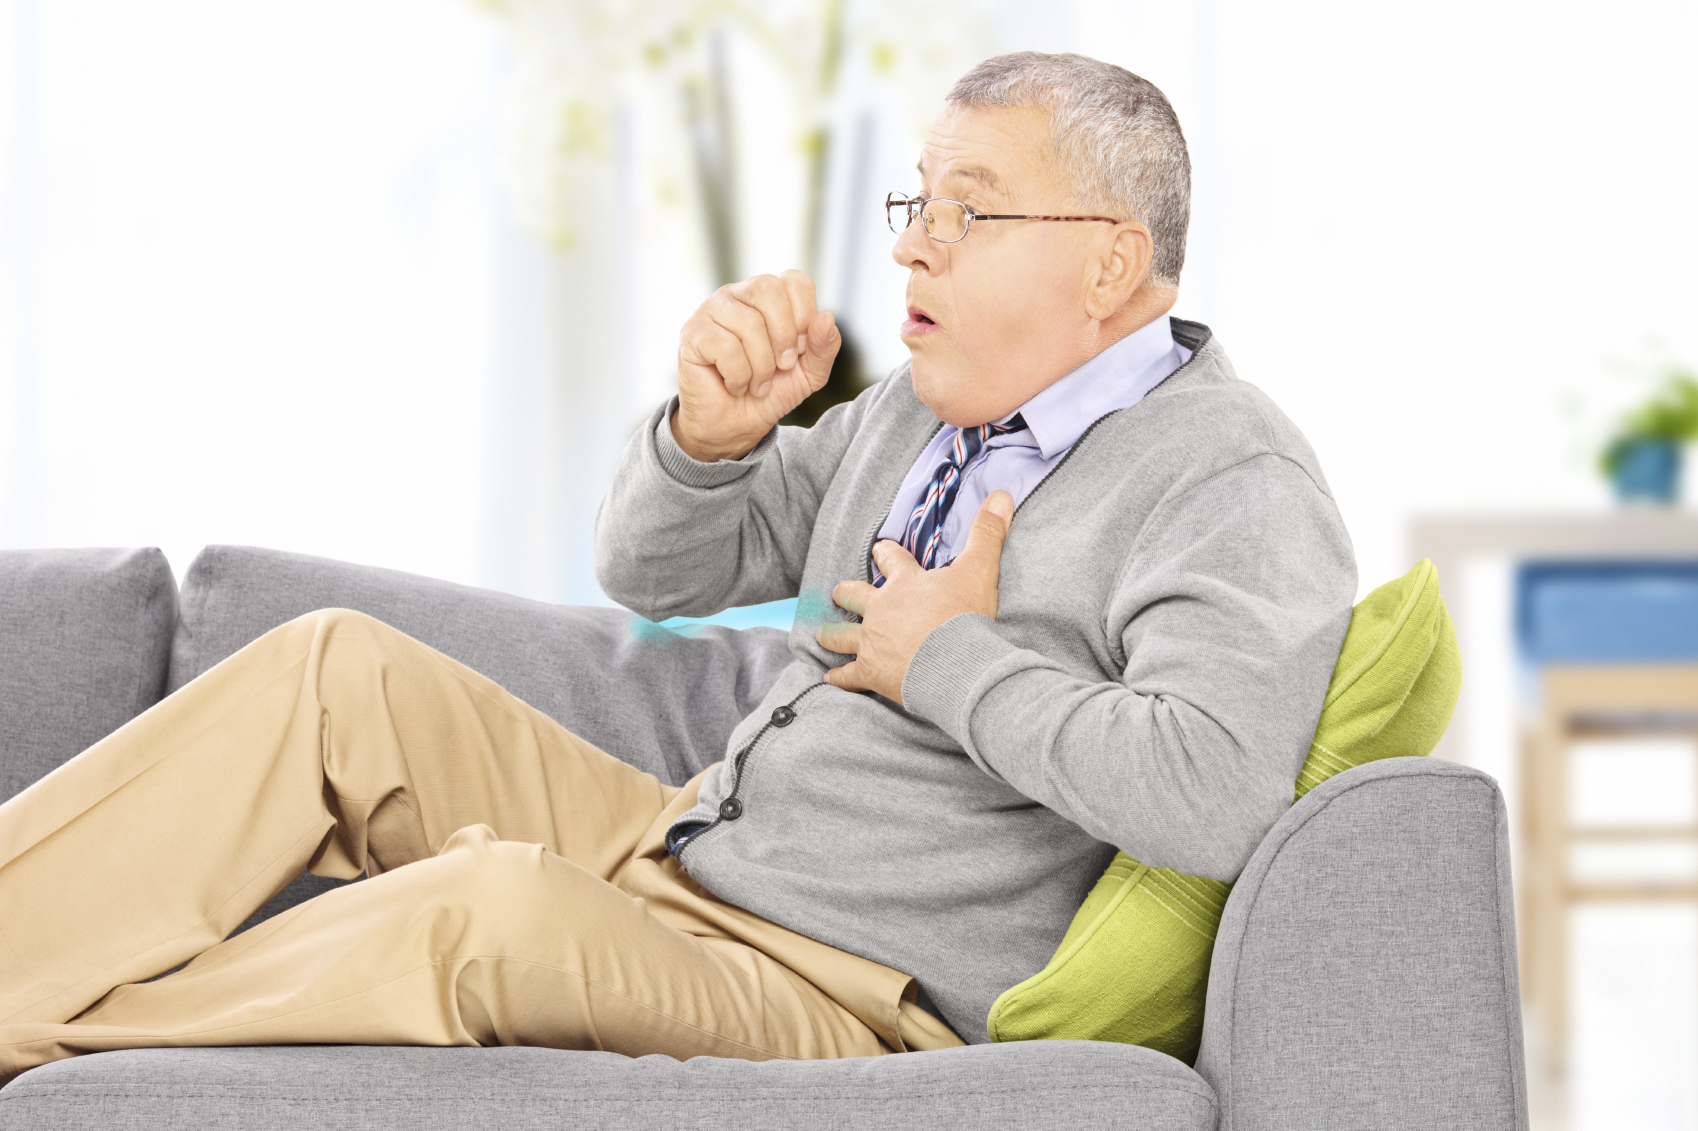 Man with COPD coughing on his couch